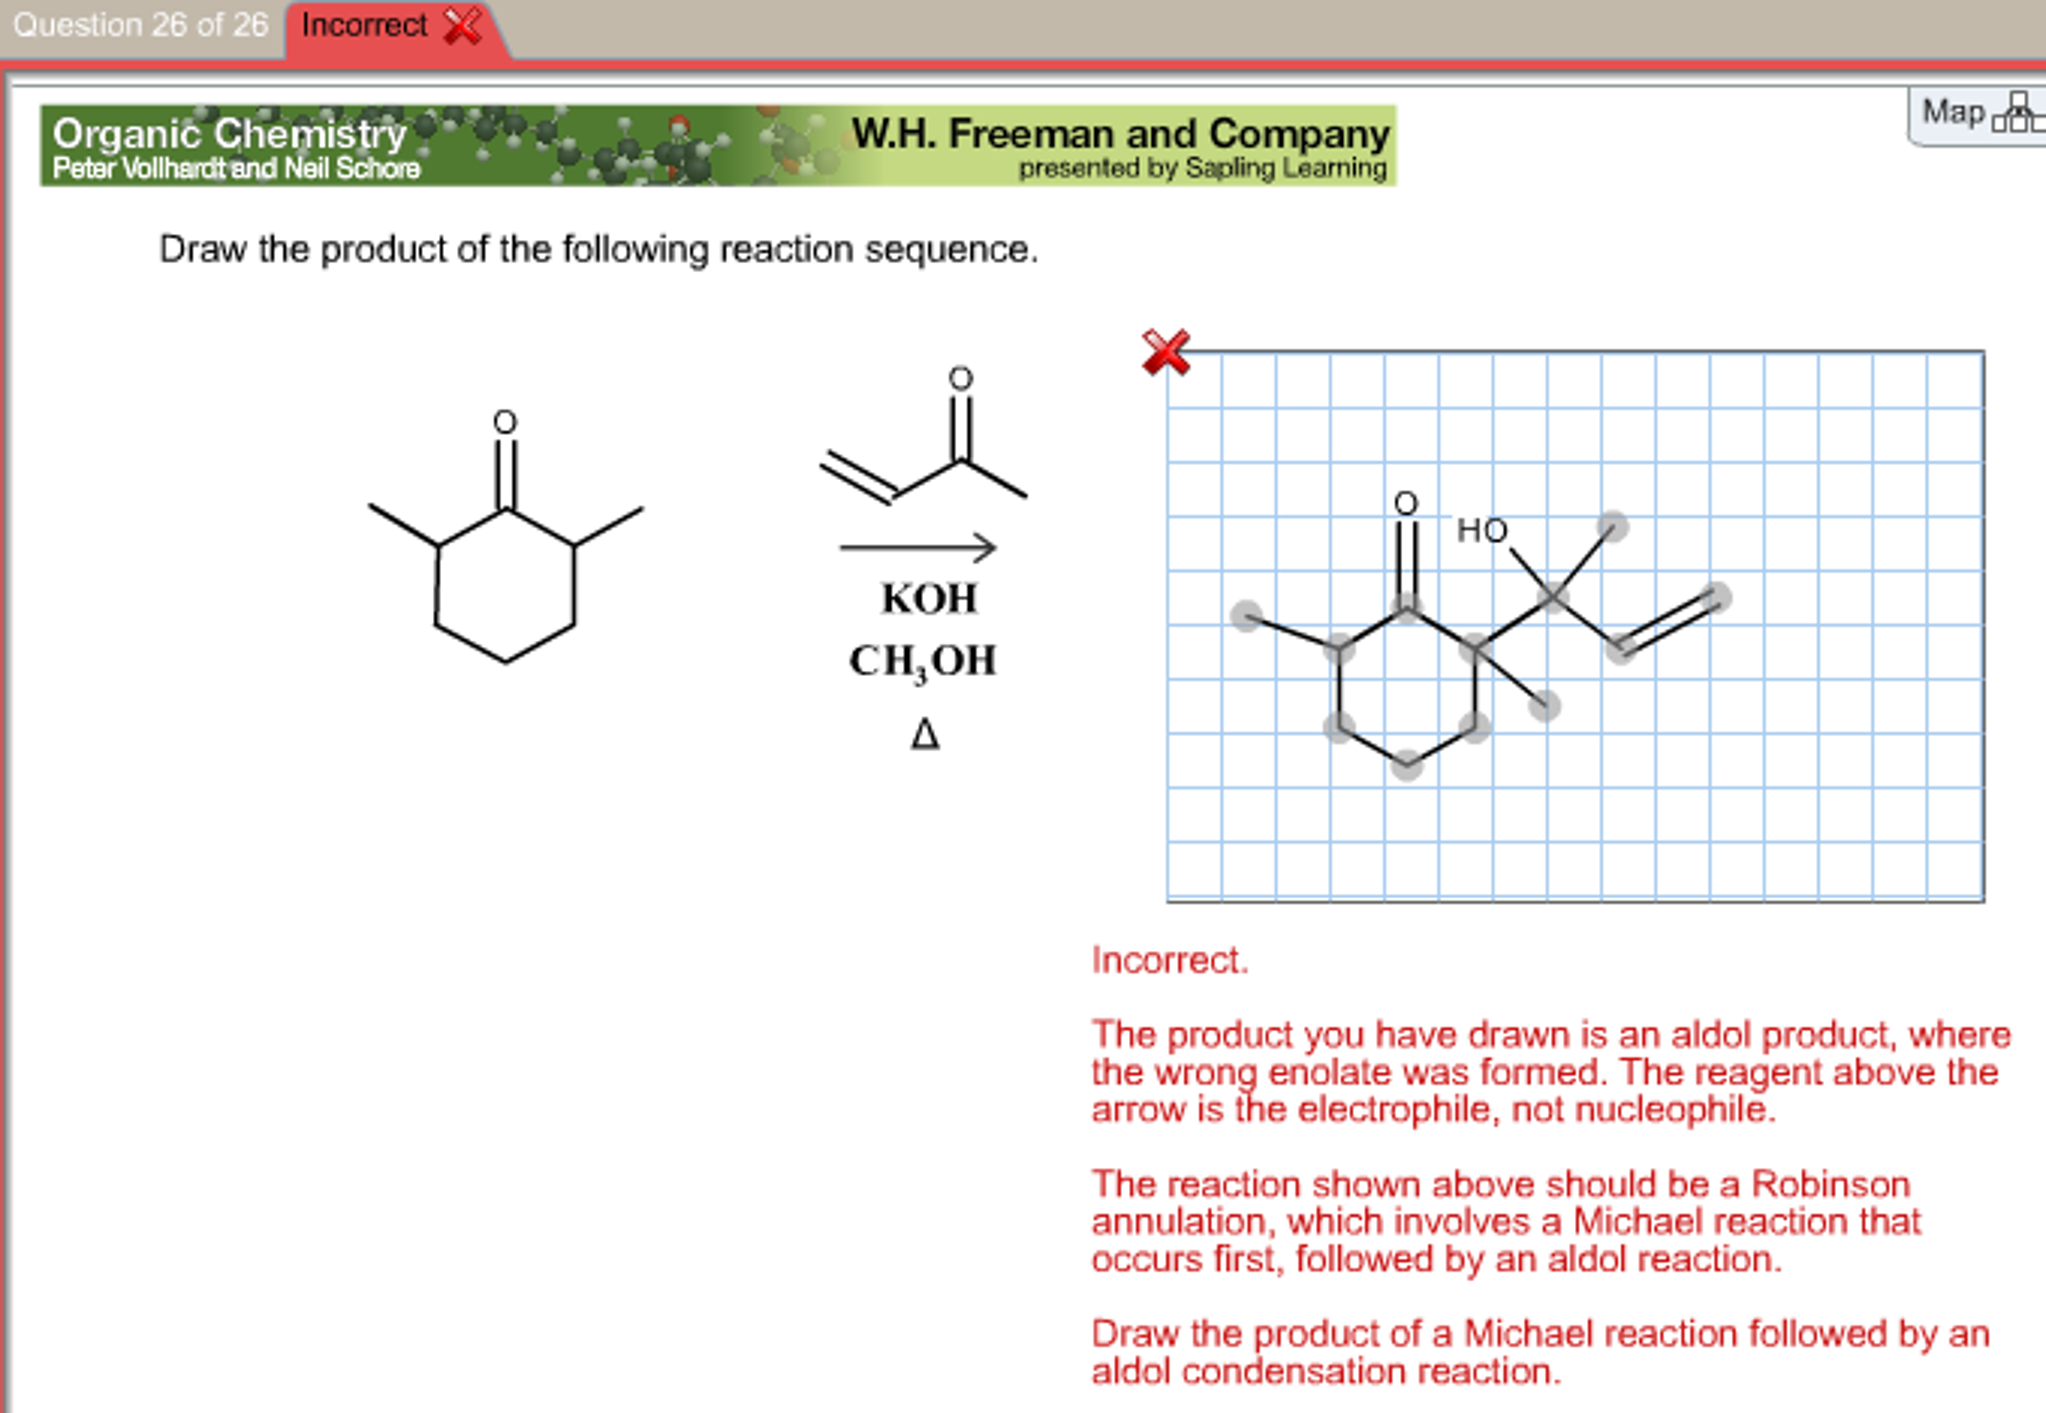 Question 26 of 26 26 Incorrect Map Organic Chemist